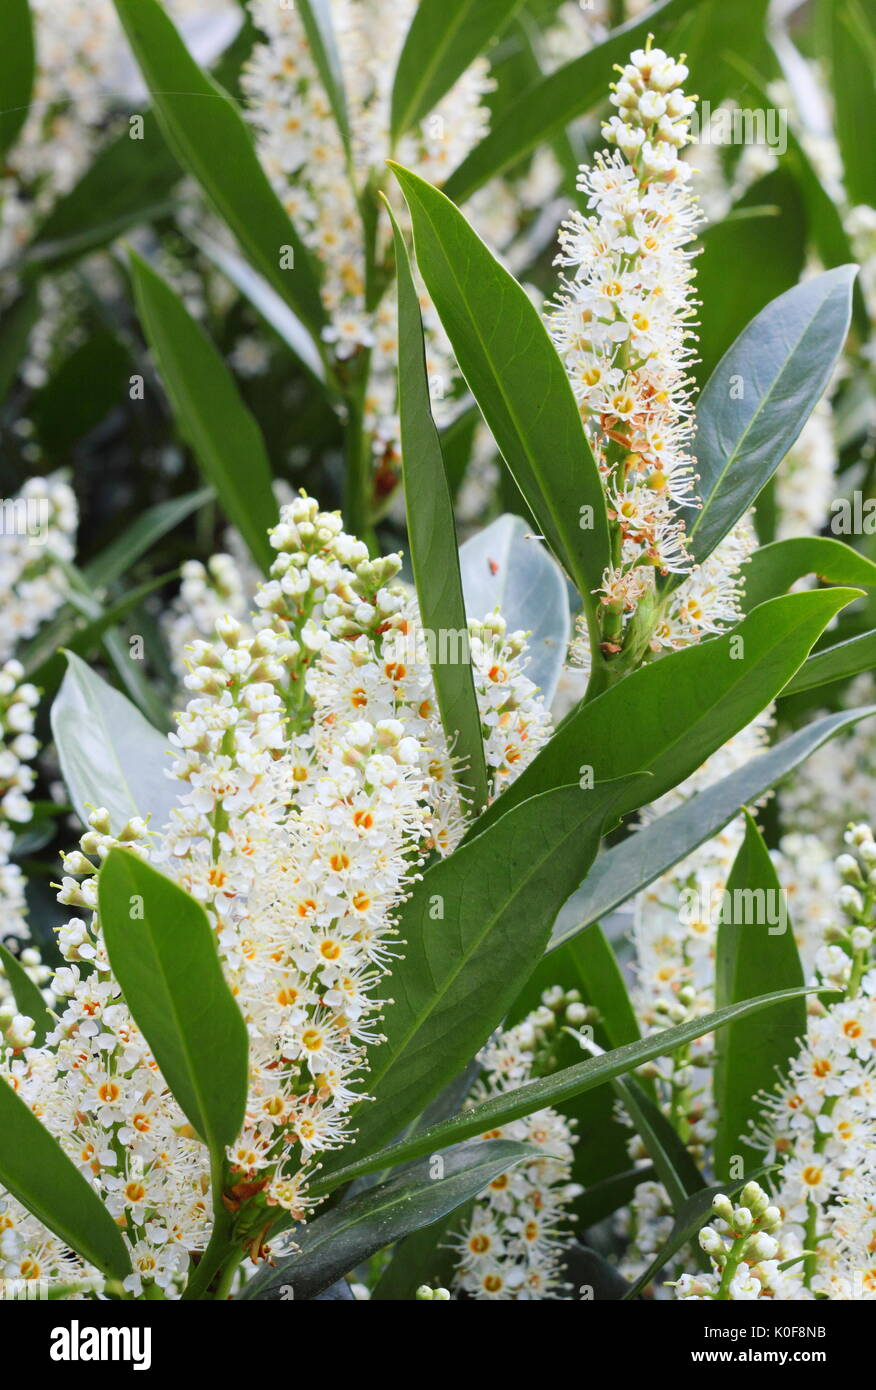 Cherry Laurel (Prunus Laurocerasus),also called English laurel -evergreen shrub displaying showy flowers, or racemes, in spring (April) in a UK garden - Stock Image